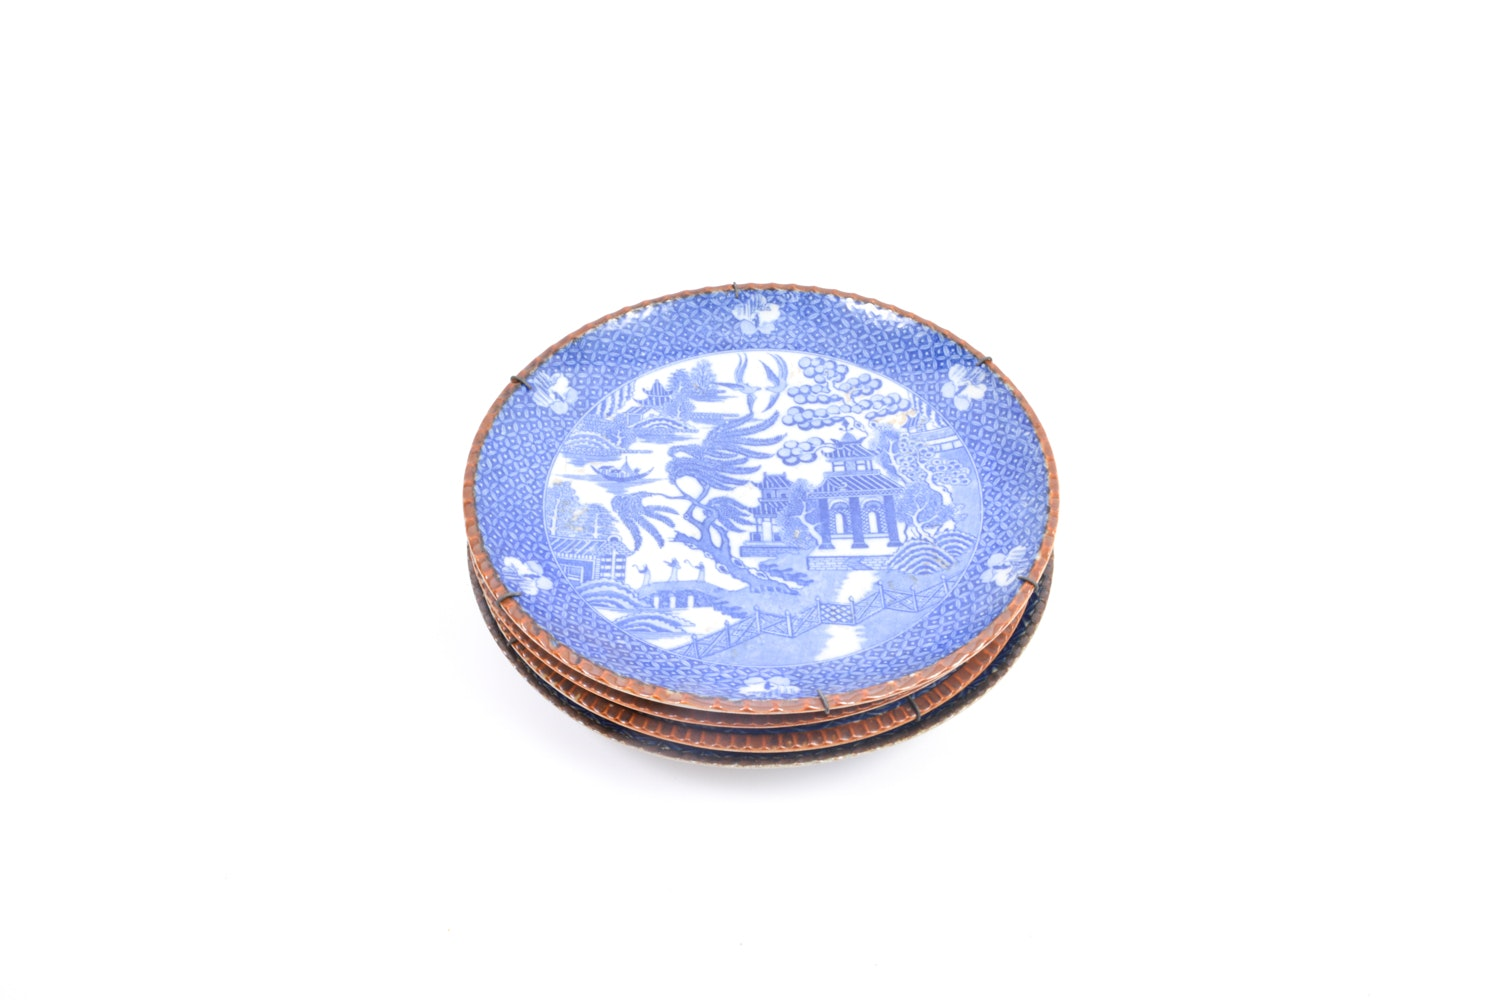 Four Chinese Blue and White Plates with Brown Rim